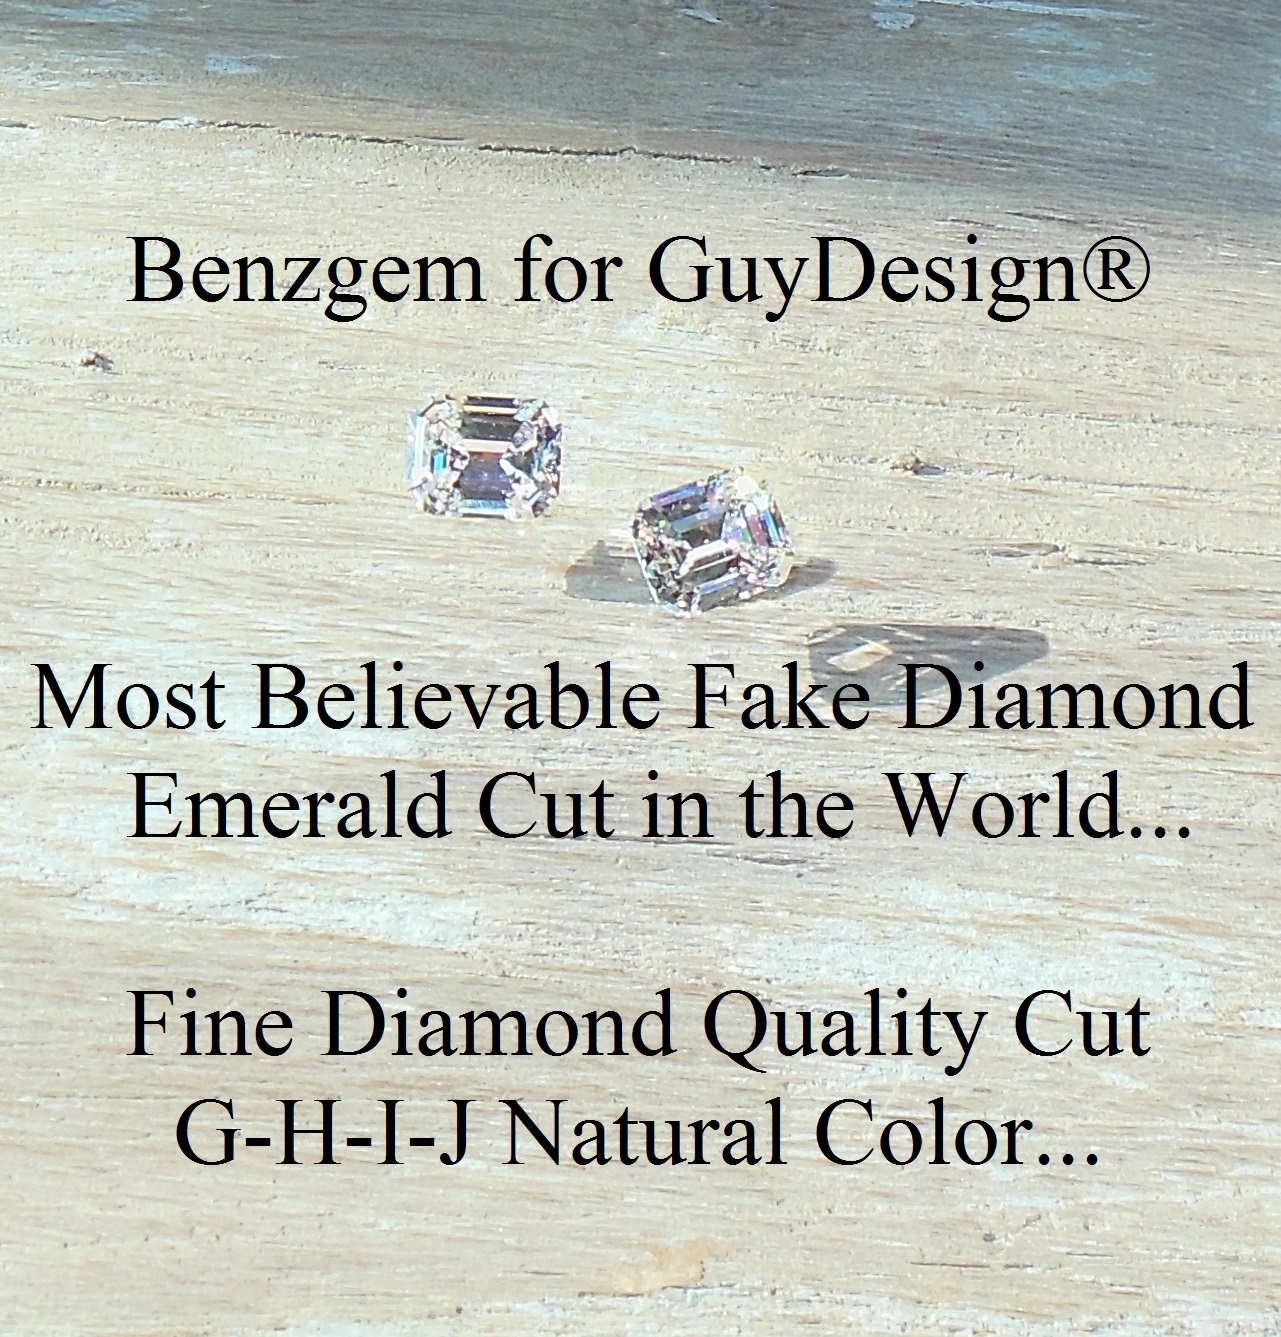 most-believable-fake-diamond-emerald-cut-in-the-world-benzgem-for-guydesign-.jpg